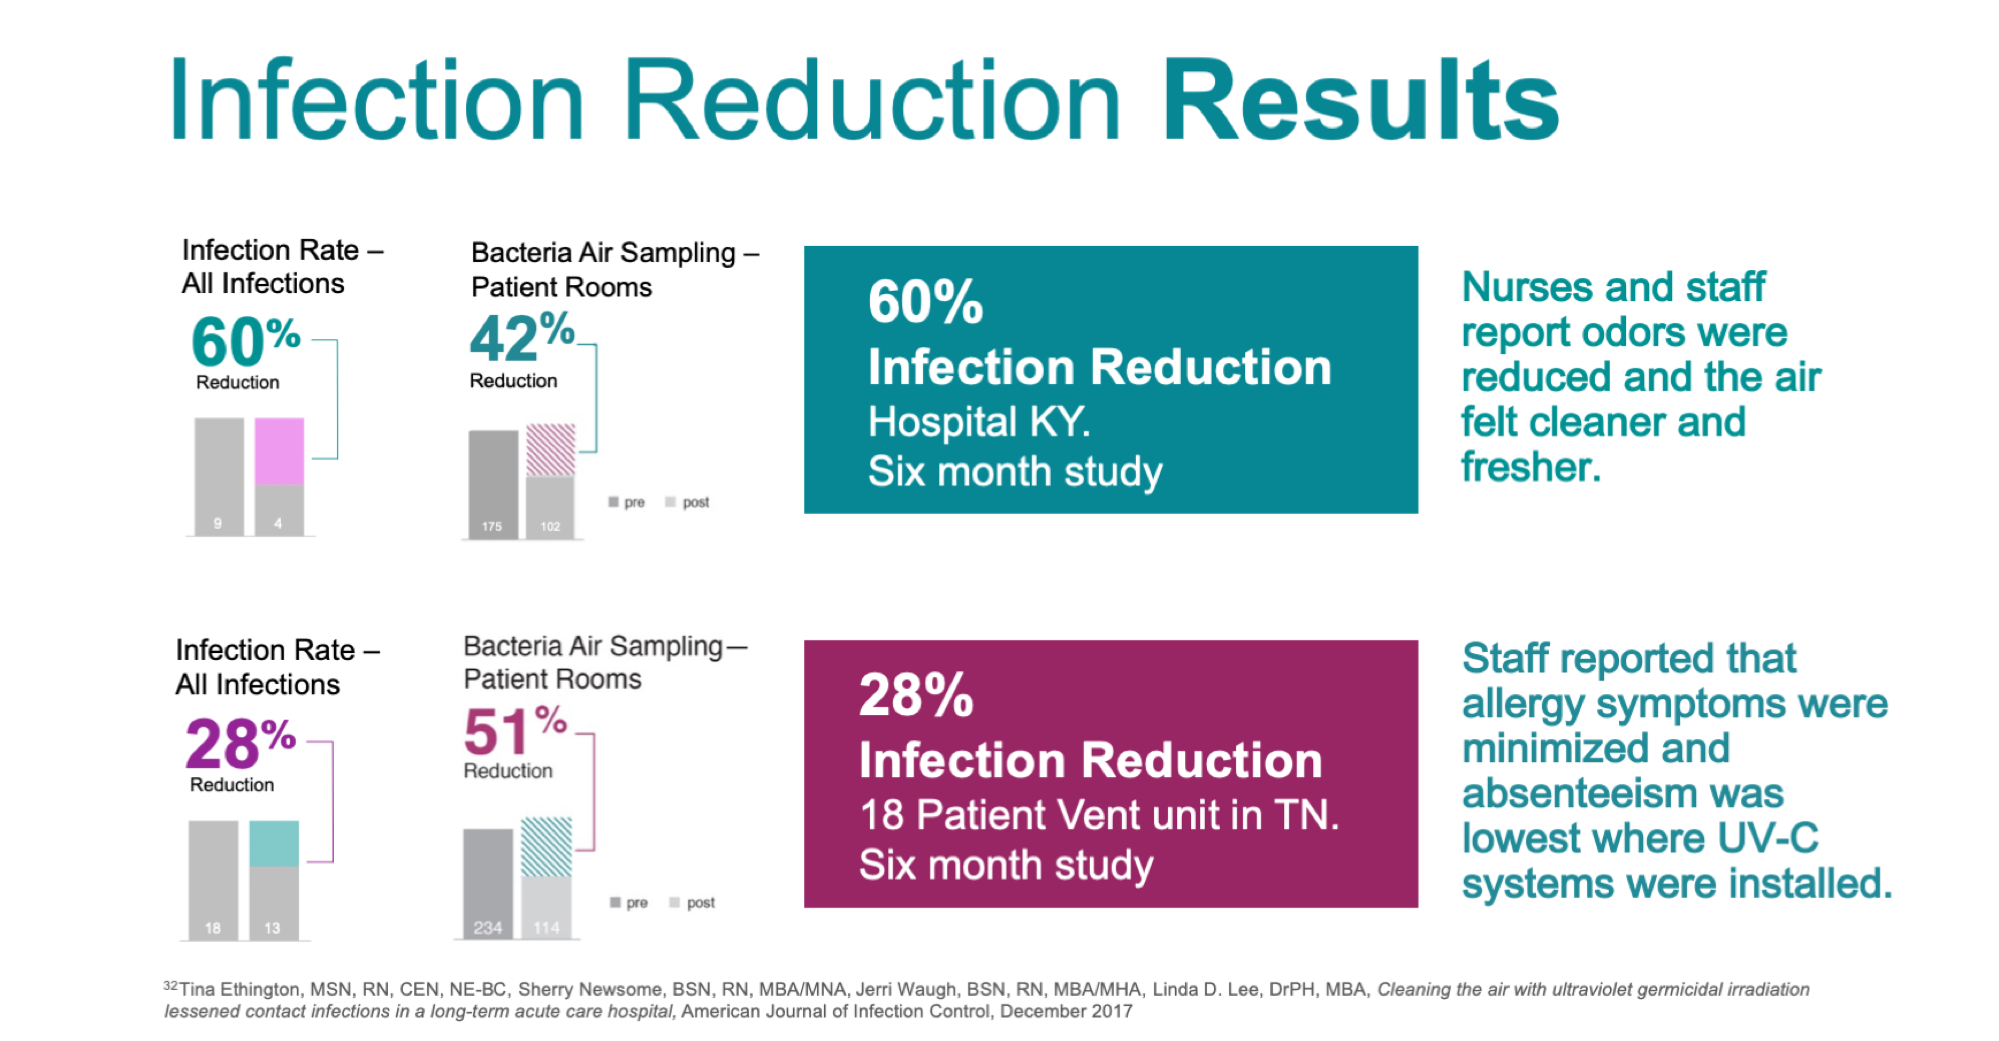 Infection Reduction results